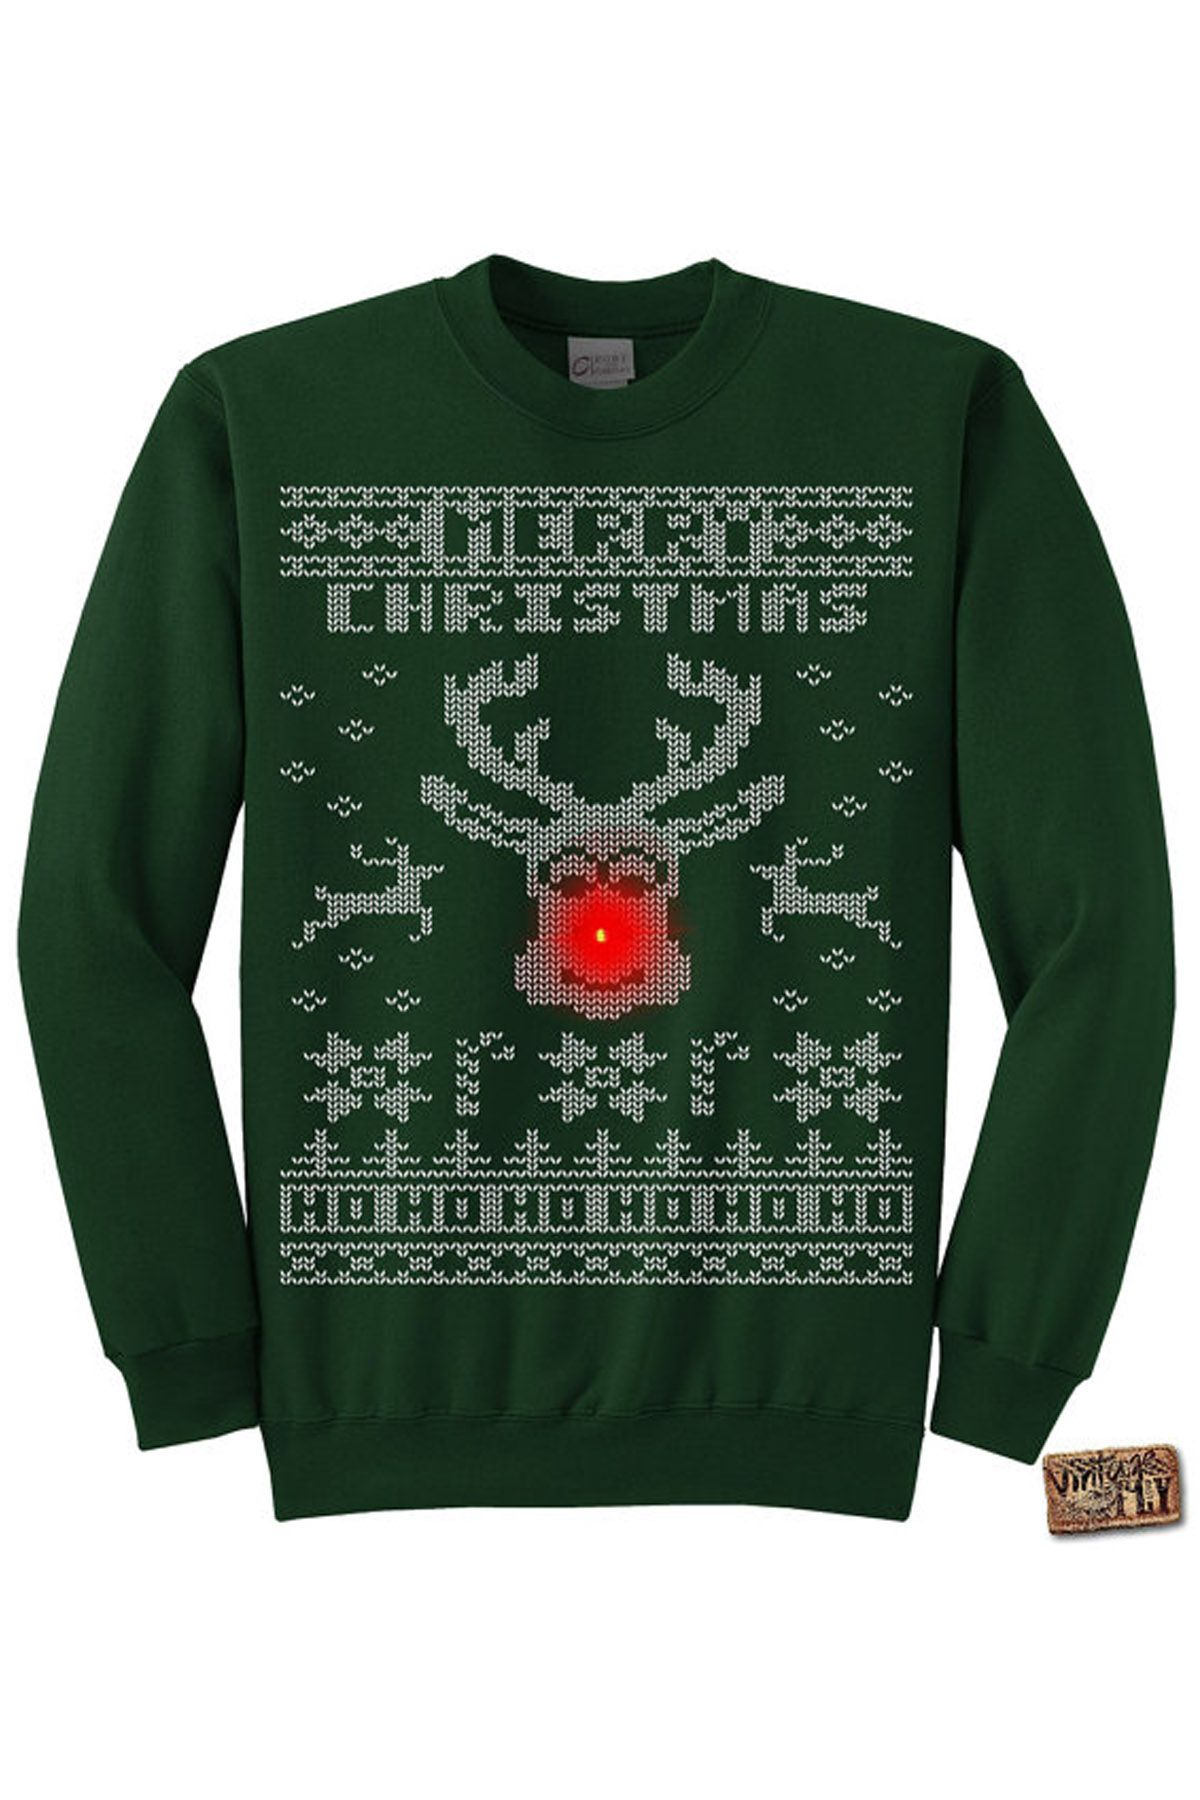 22 ugly christmas sweater ideas to buy and diy tacky christmas sweaters for women - Homemade Tacky Christmas Sweaters